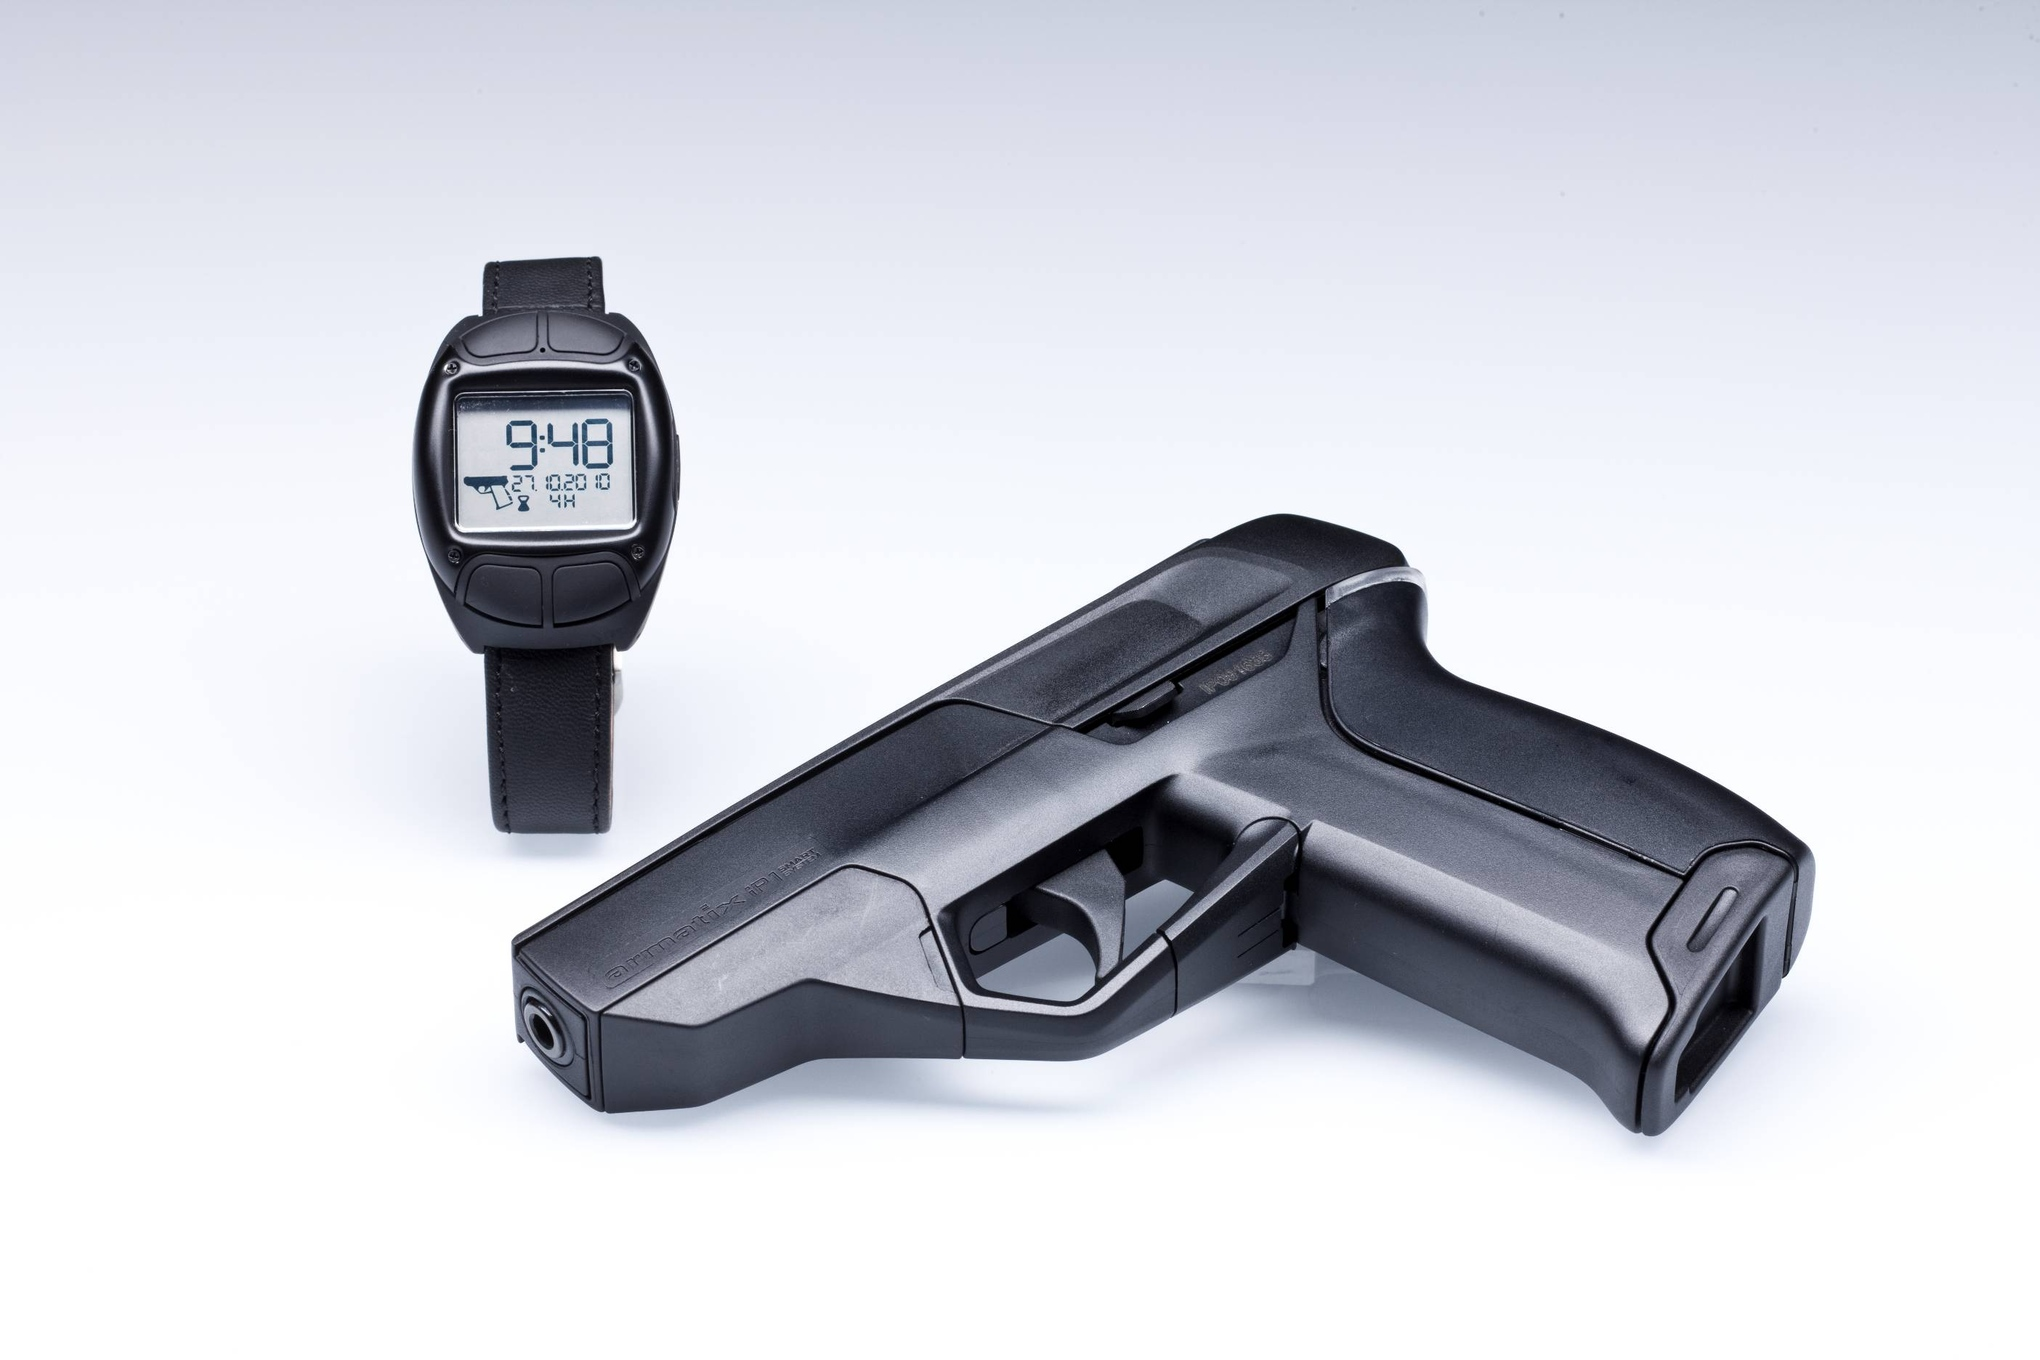 smart gun technology comes with a remote kill switch